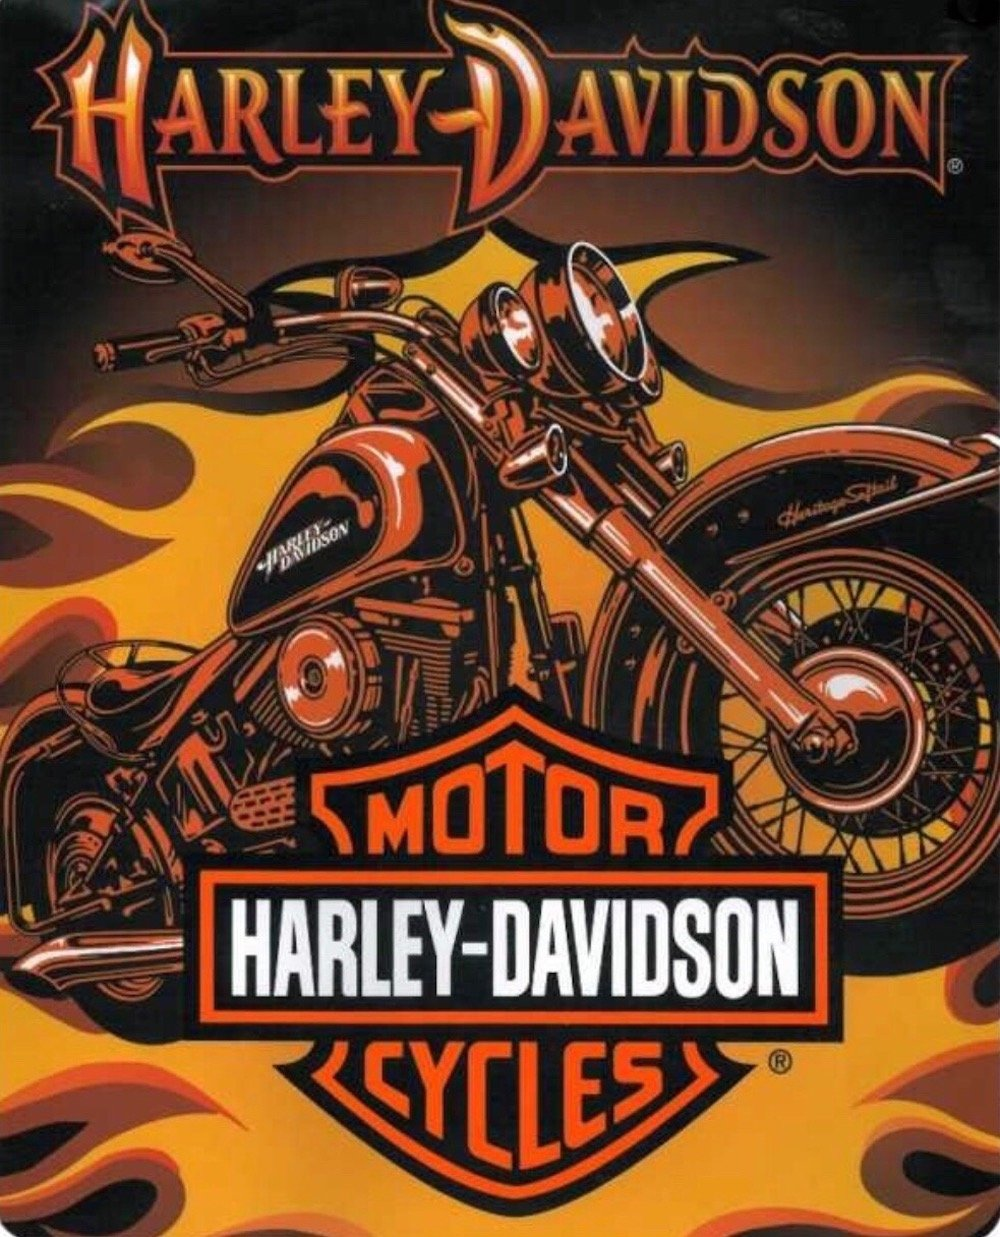 Harley Davidson Sunset Plush Raschel Throw Blanket (Queen)